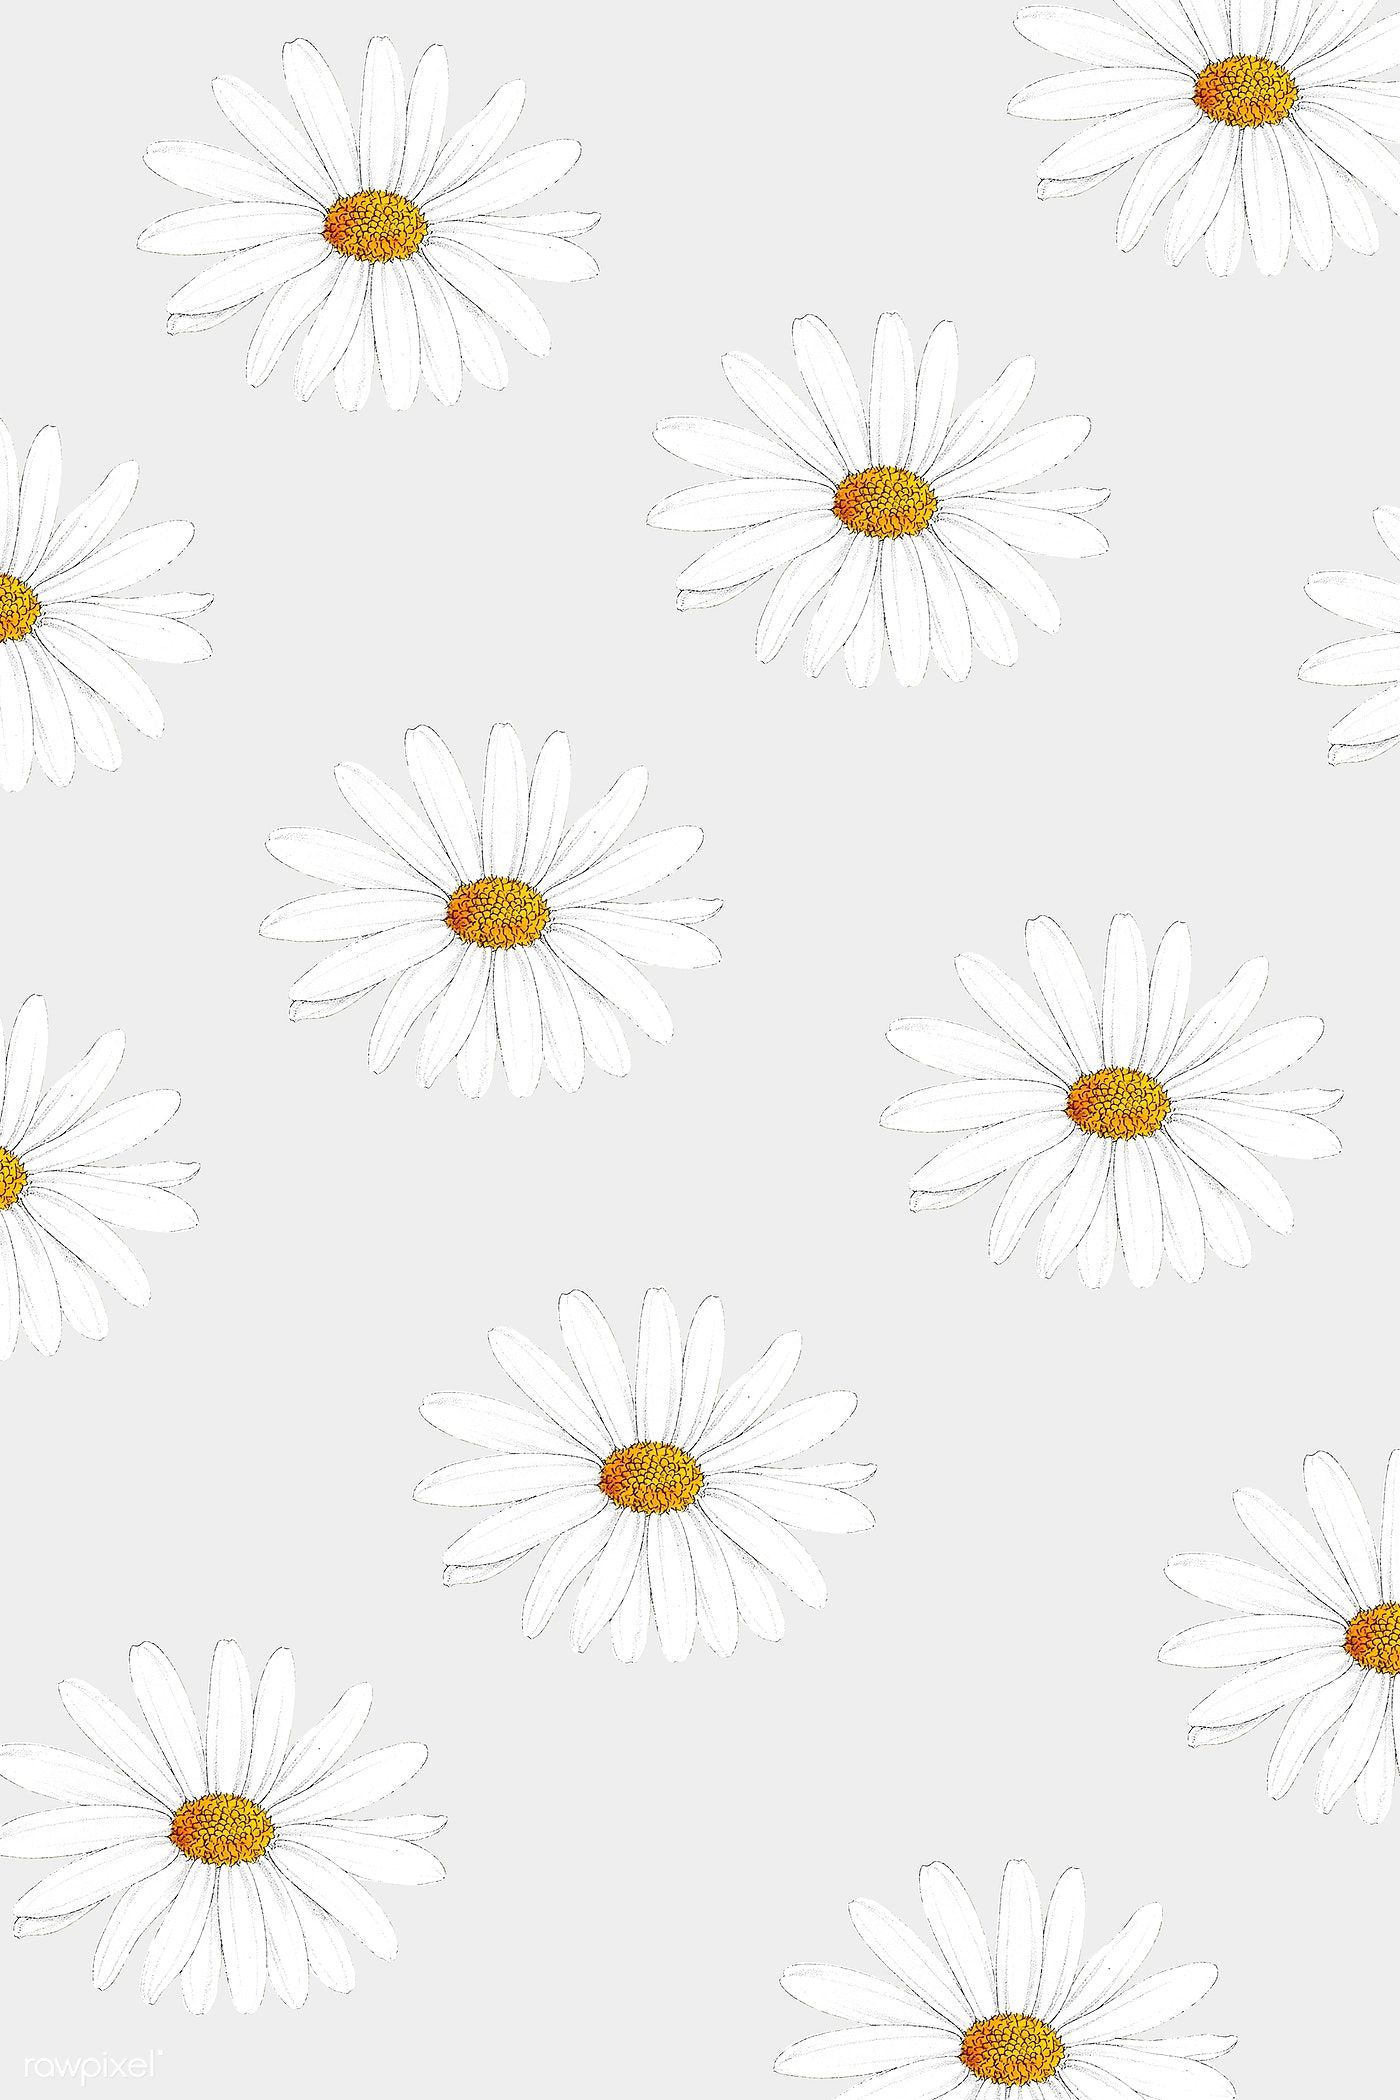 Download premium illustration of White daisy patterned